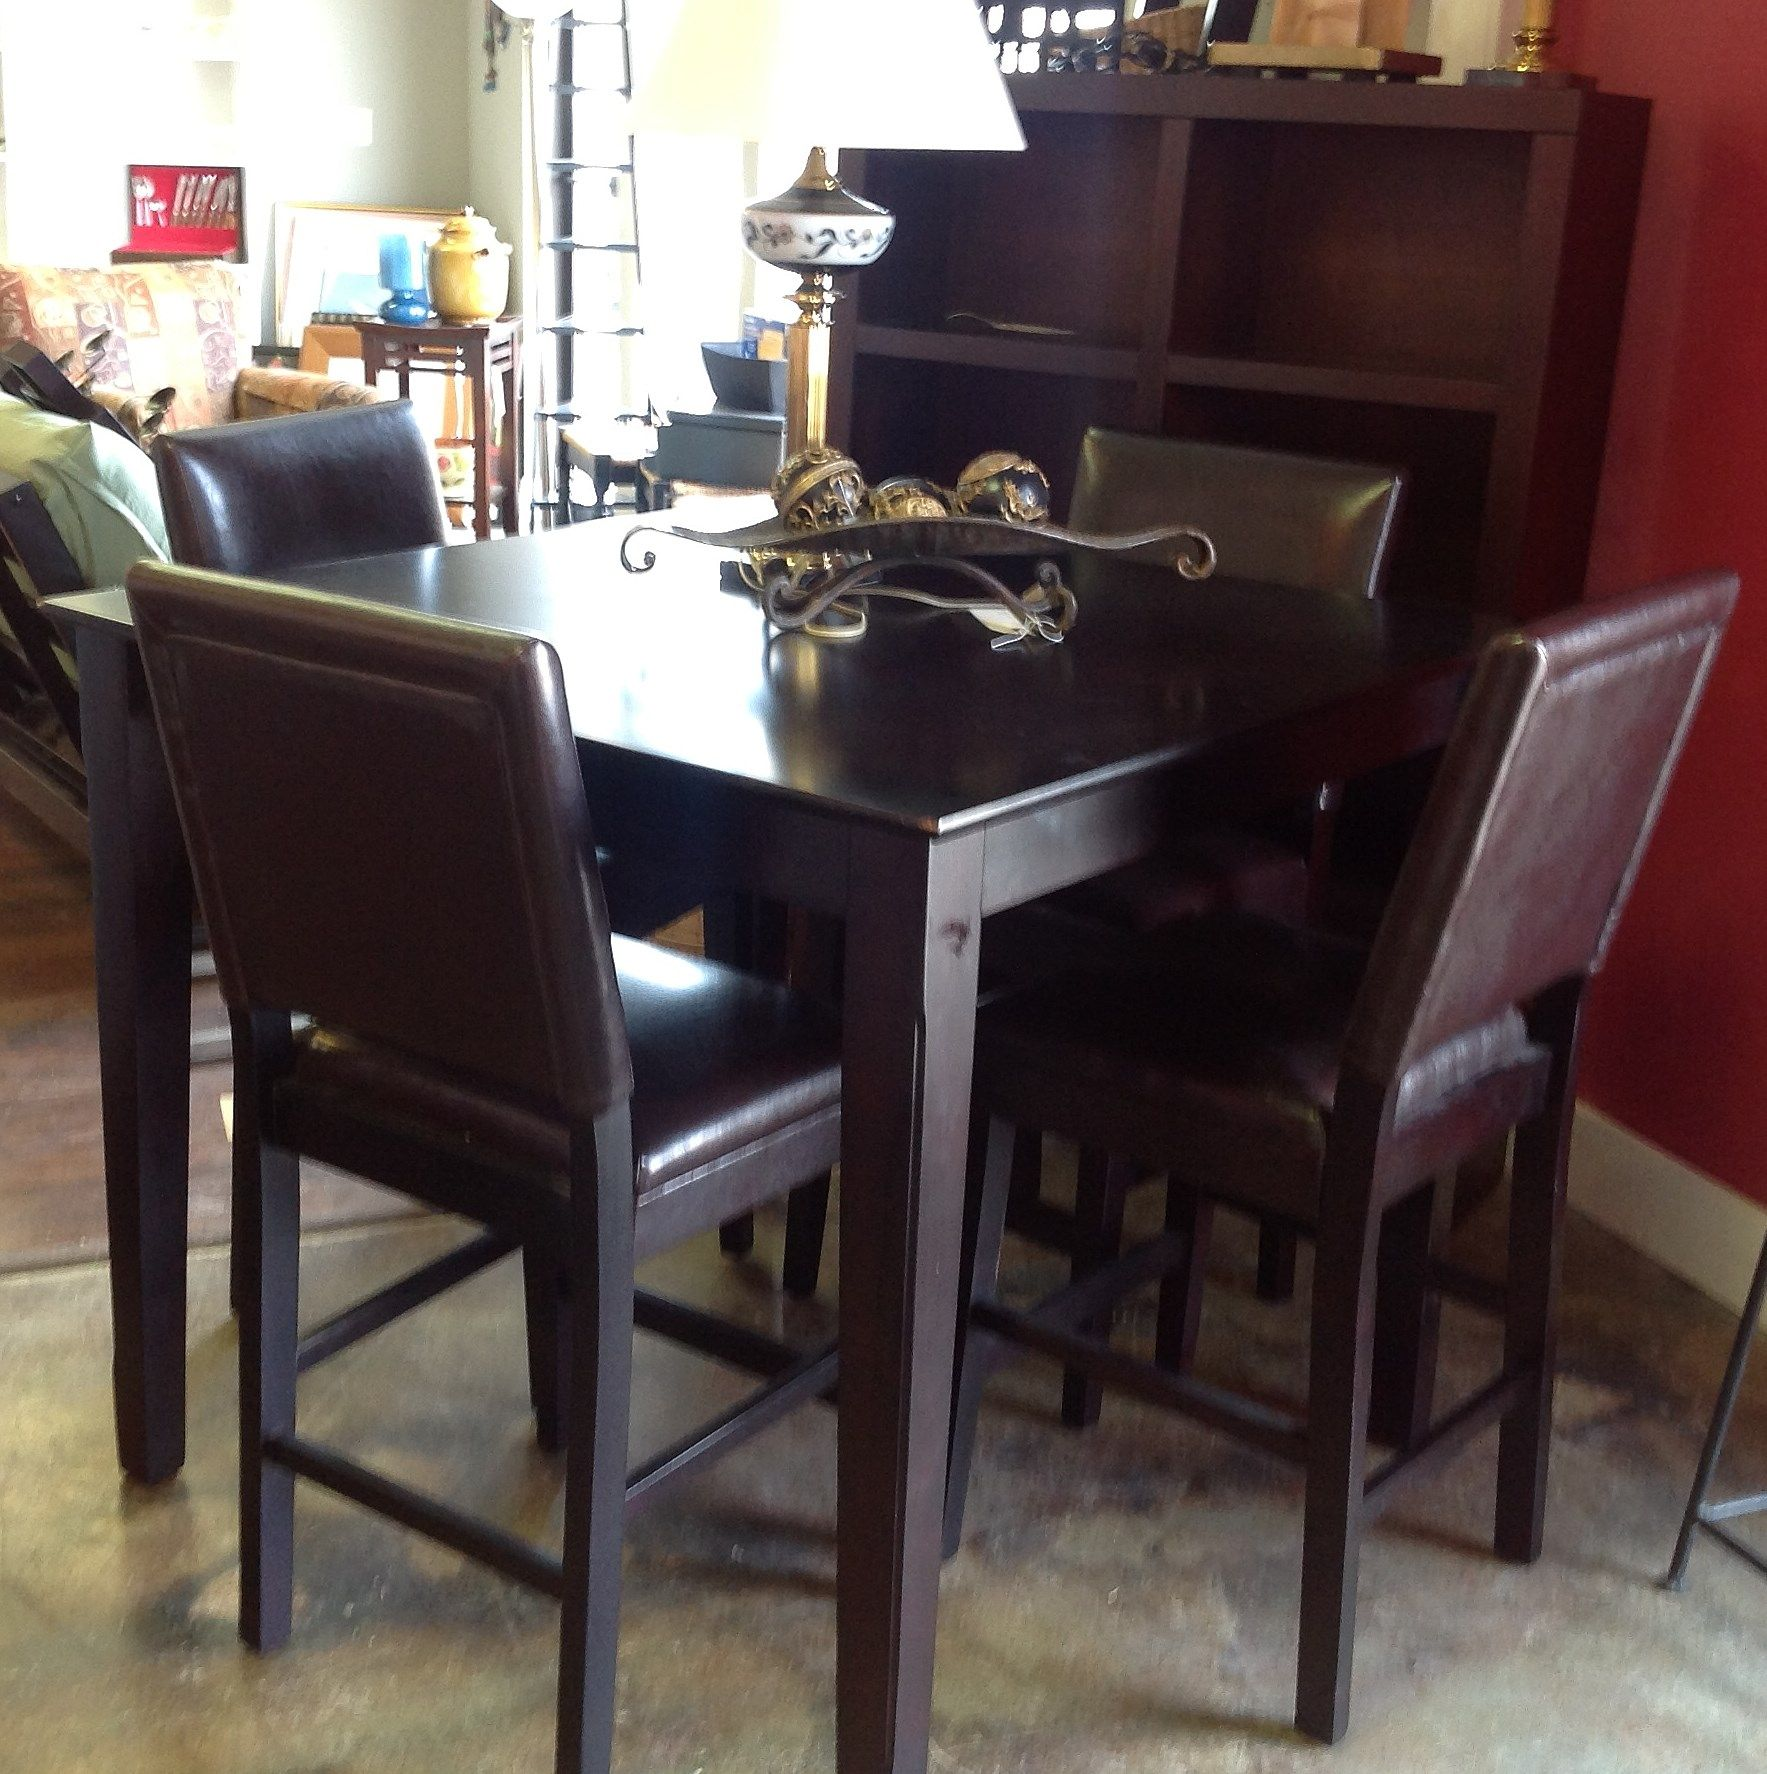 High Top Table With 4 Leather Chairs High Top Table Kitchen High Top Tables Pub Table Sets